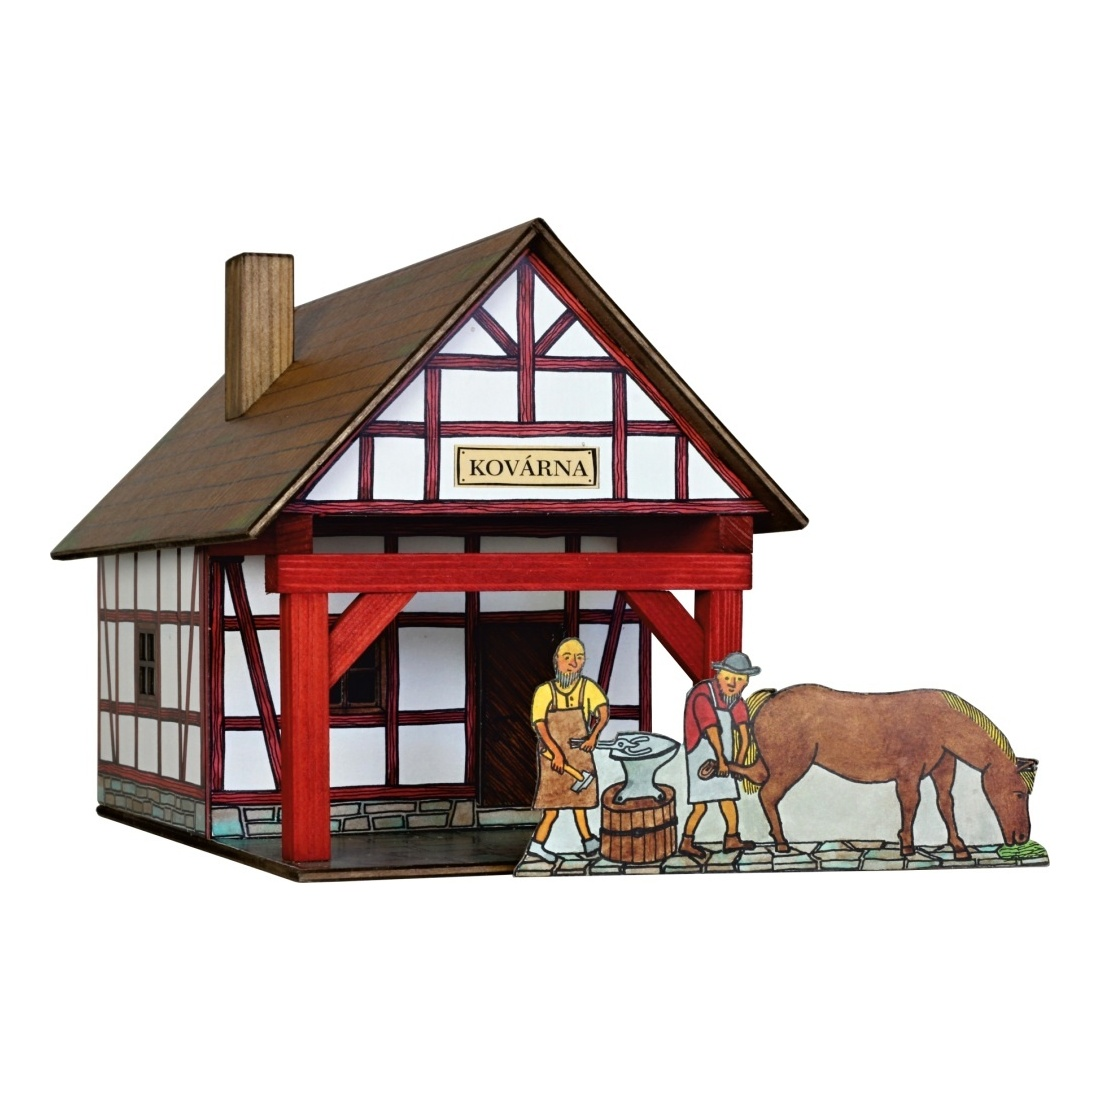 FACHWERK-SCHMIEDE - Walachia wooden toys made in Europe